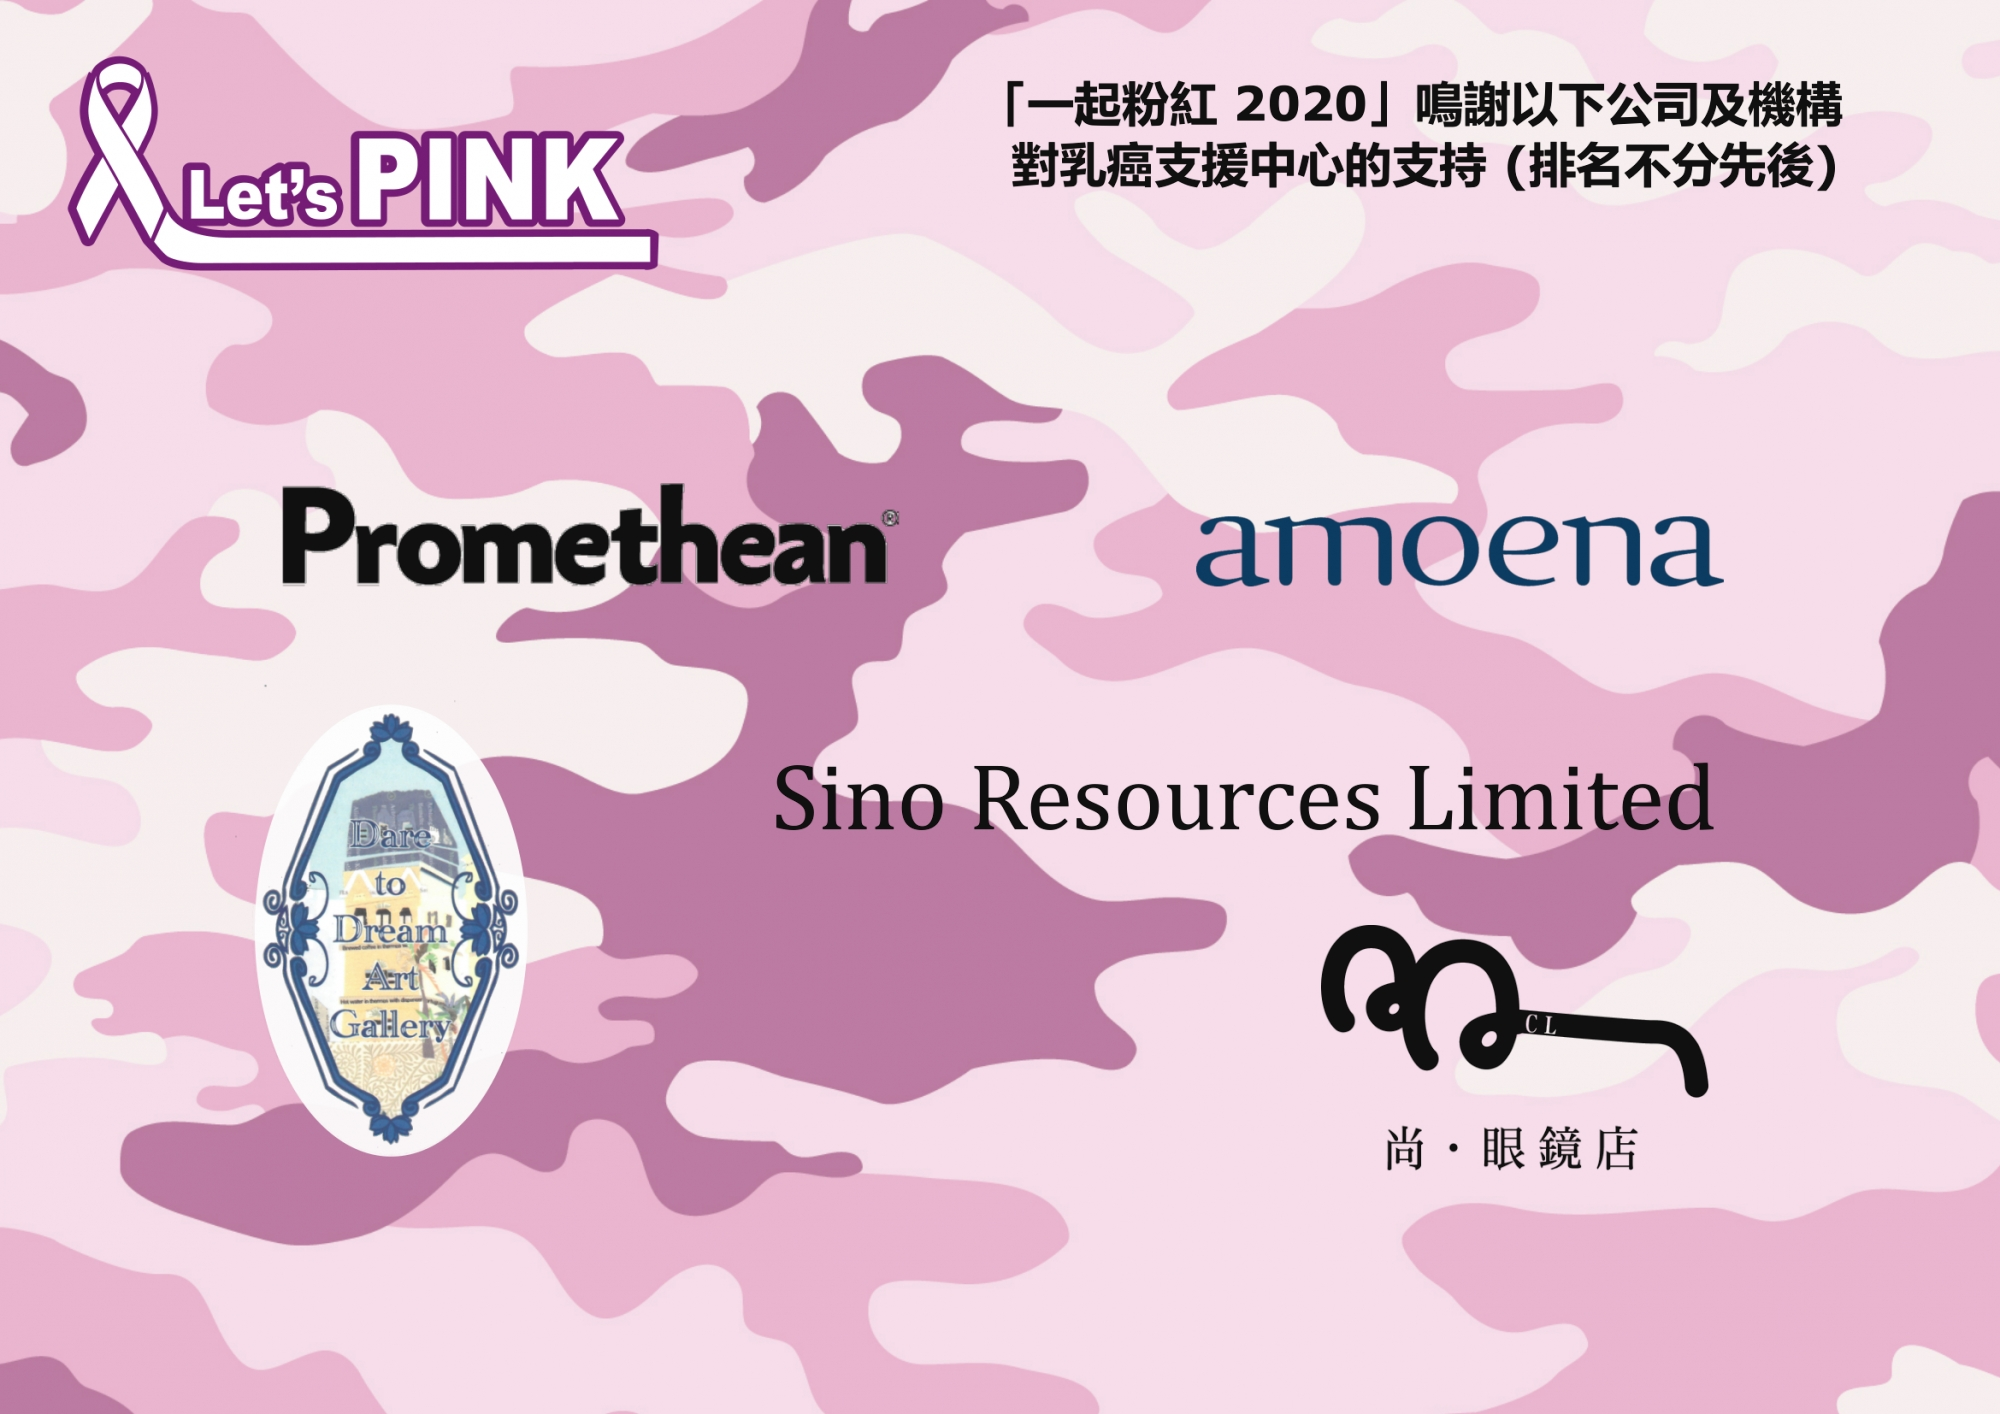 Self Photos / Files - let's pink 2020 acknowledgement chi_v4